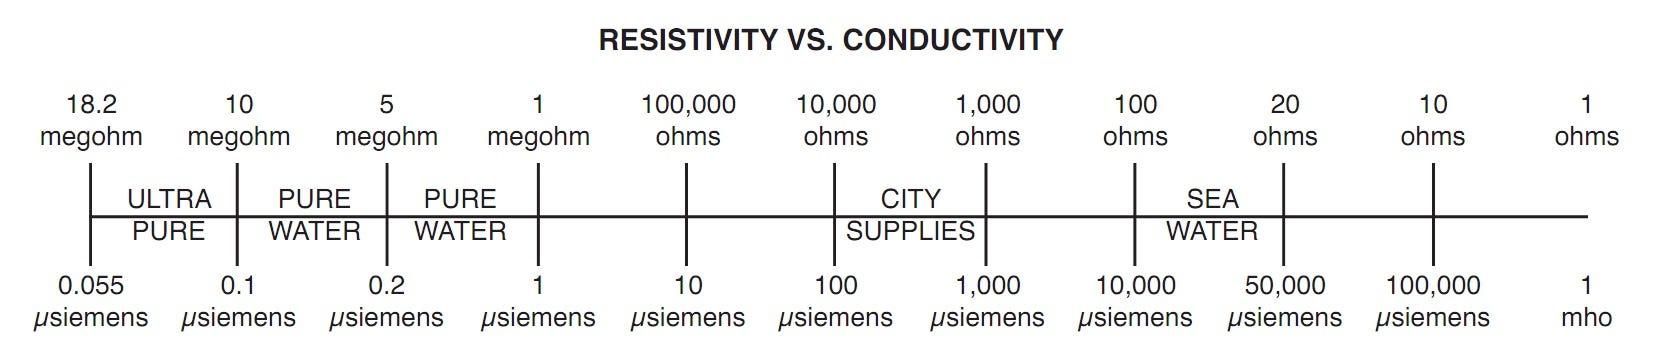 DI water quality can reach the highest level of 18.2 MegaOhm or conductivity of 0.055 µS/cm. However, in reality reaching more than 10 MegaOhm is already high